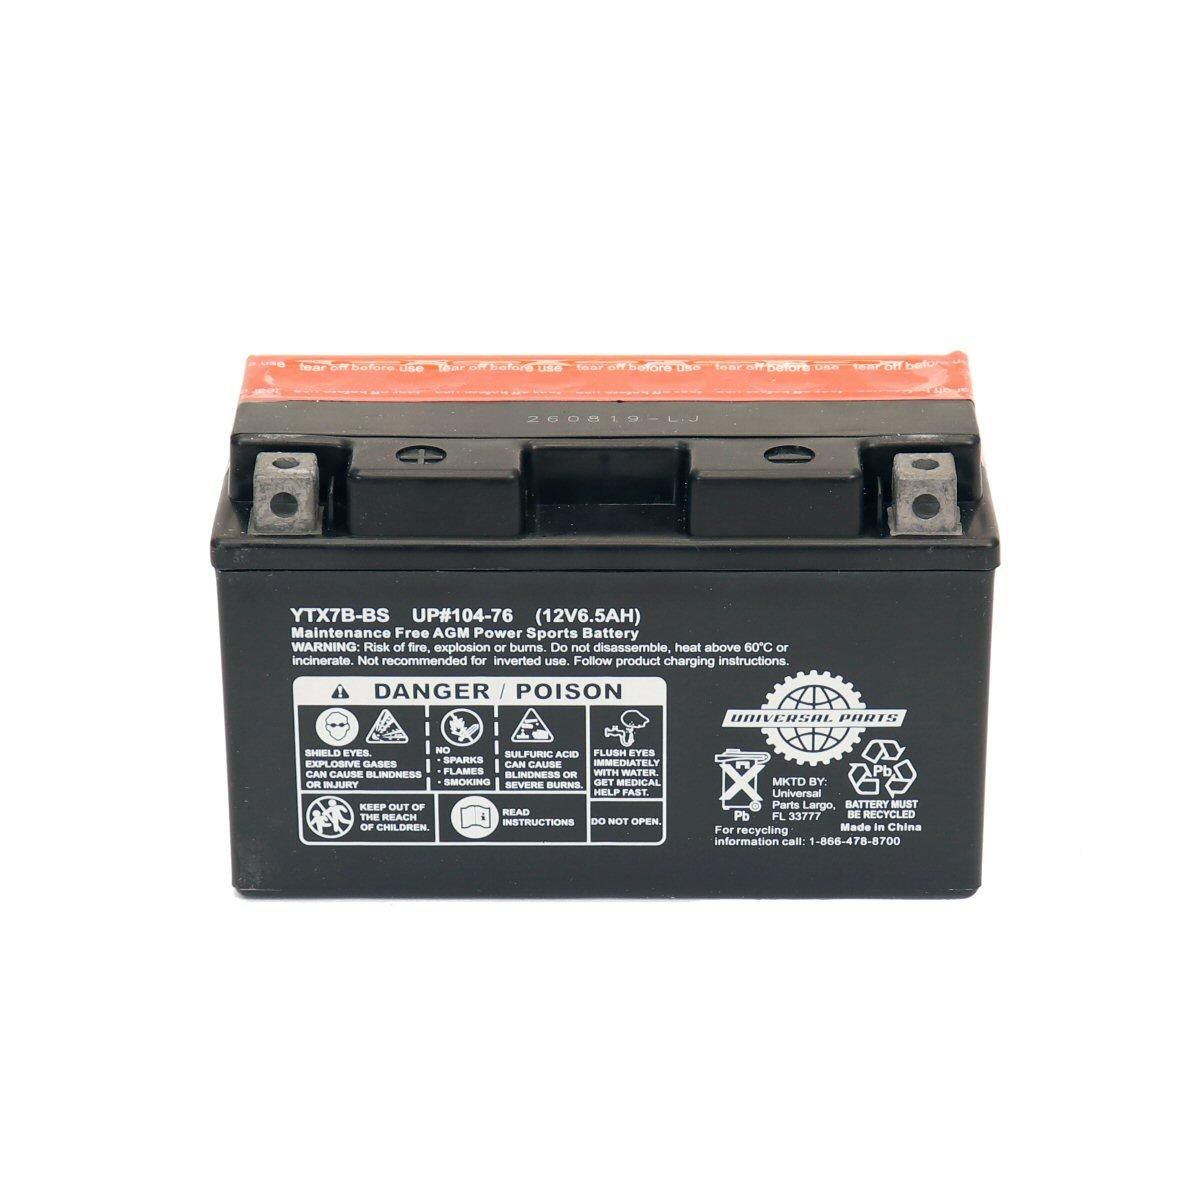 Universal Parts 12 Volt 6.5 Amp YTX7B-BS Battery